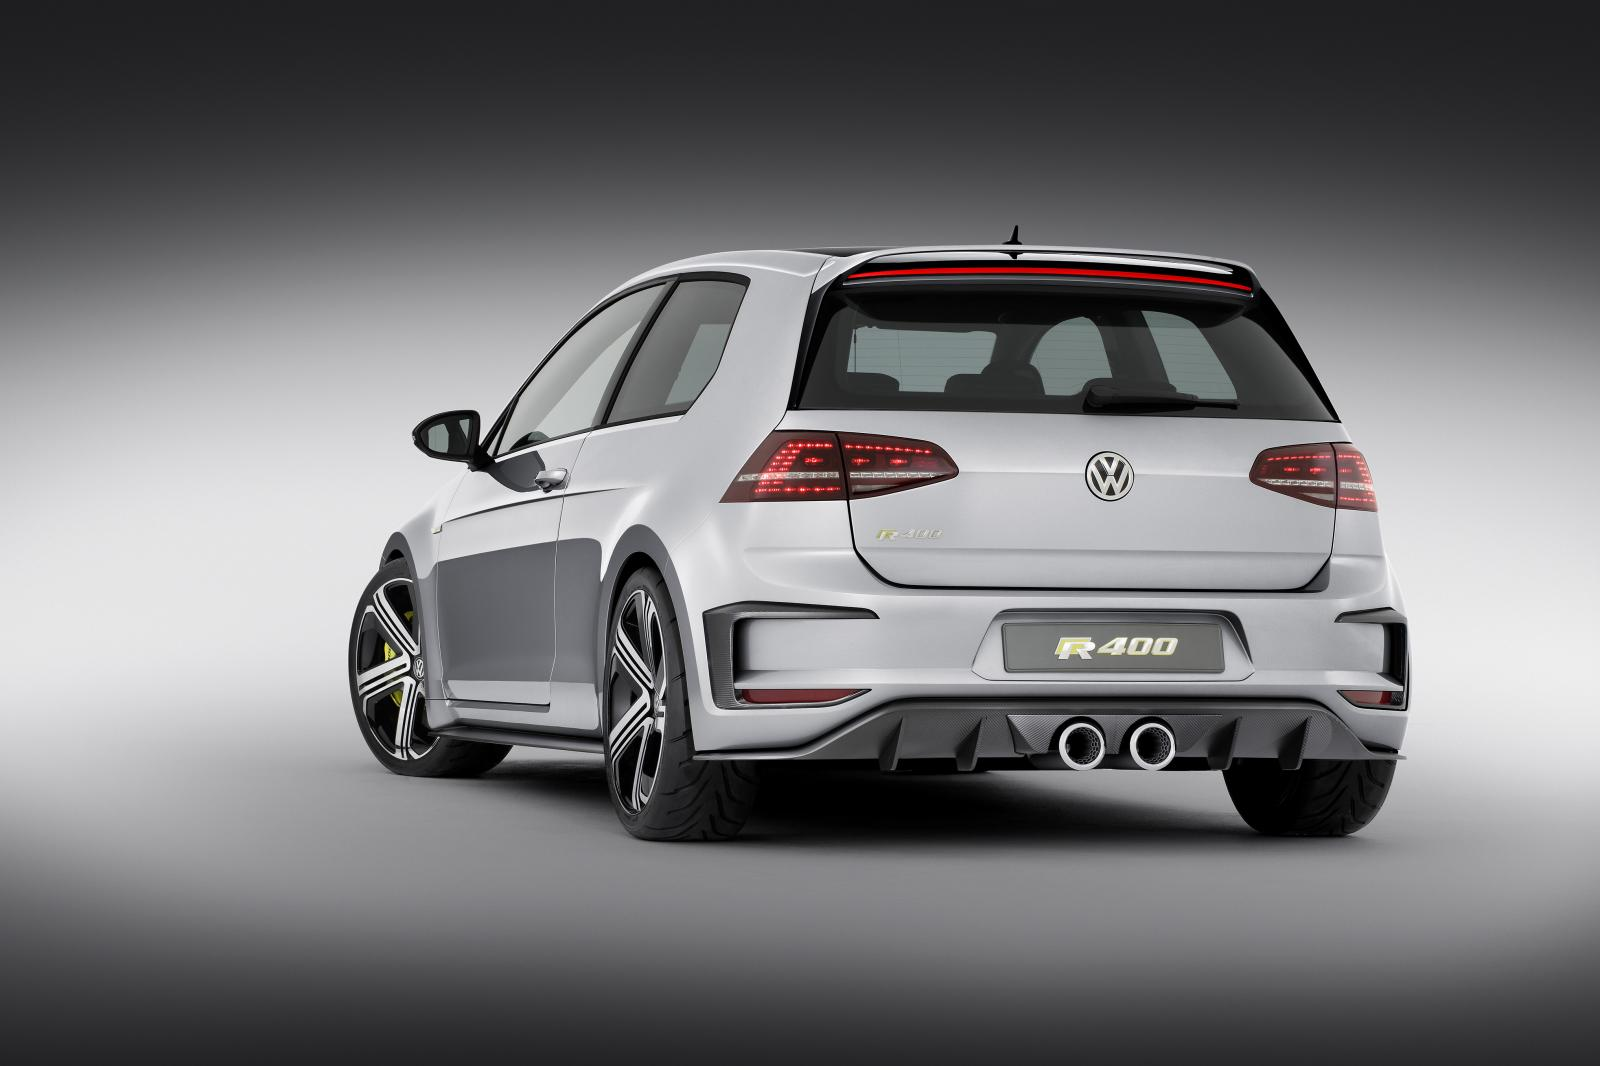 volkswagen cars news golf r400 confirmed for production. Black Bedroom Furniture Sets. Home Design Ideas